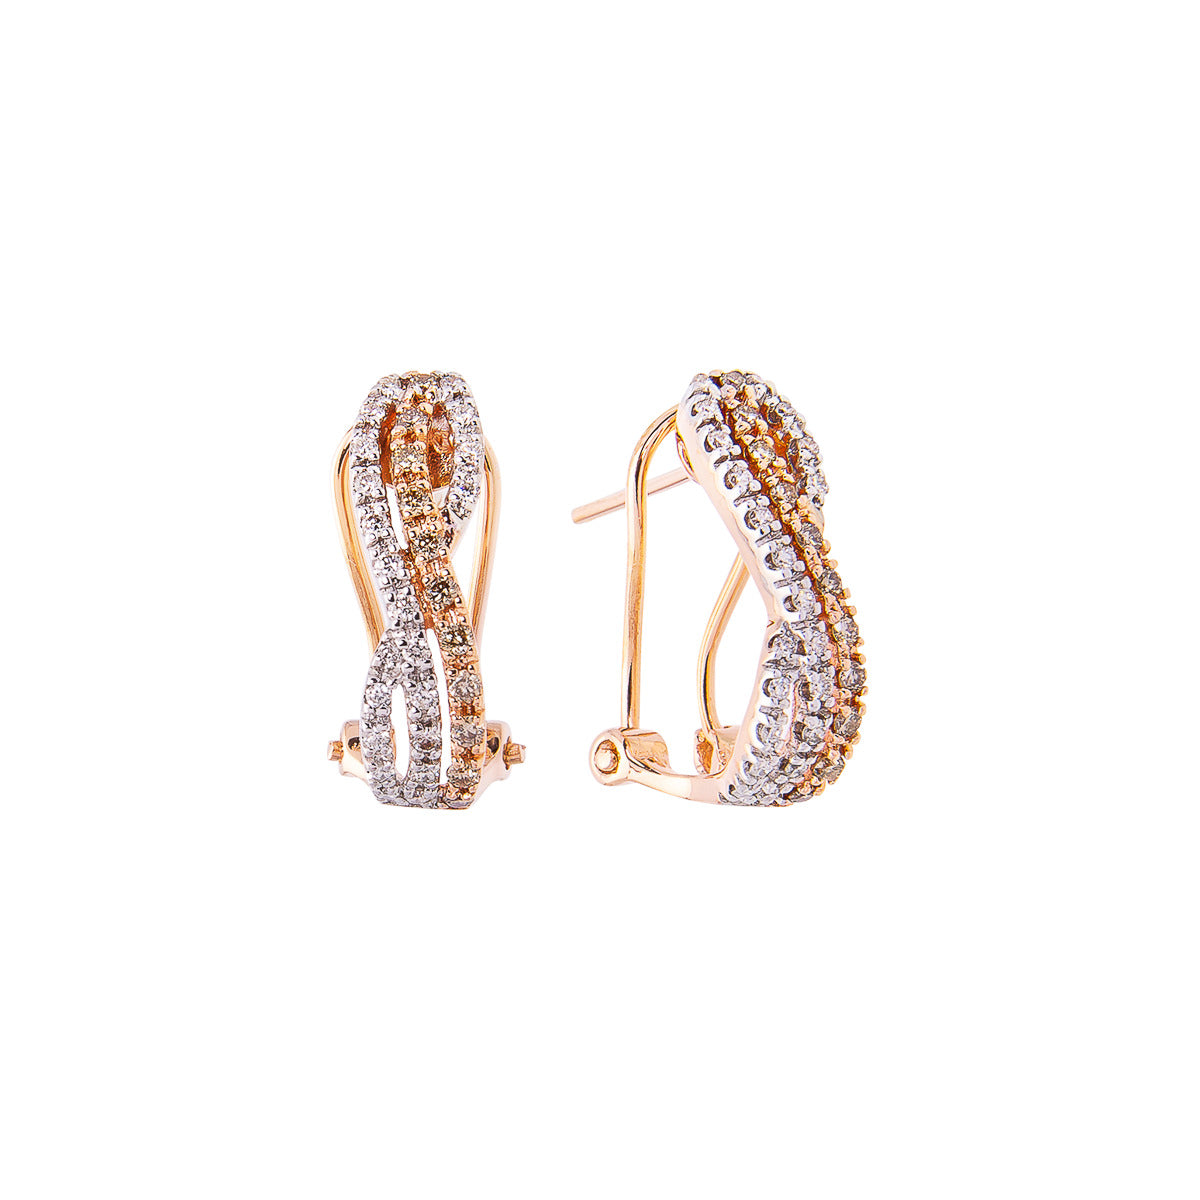 Sabel Collection 14K Rose and White Gold Fancy Color and White Diamond Twist Earrings